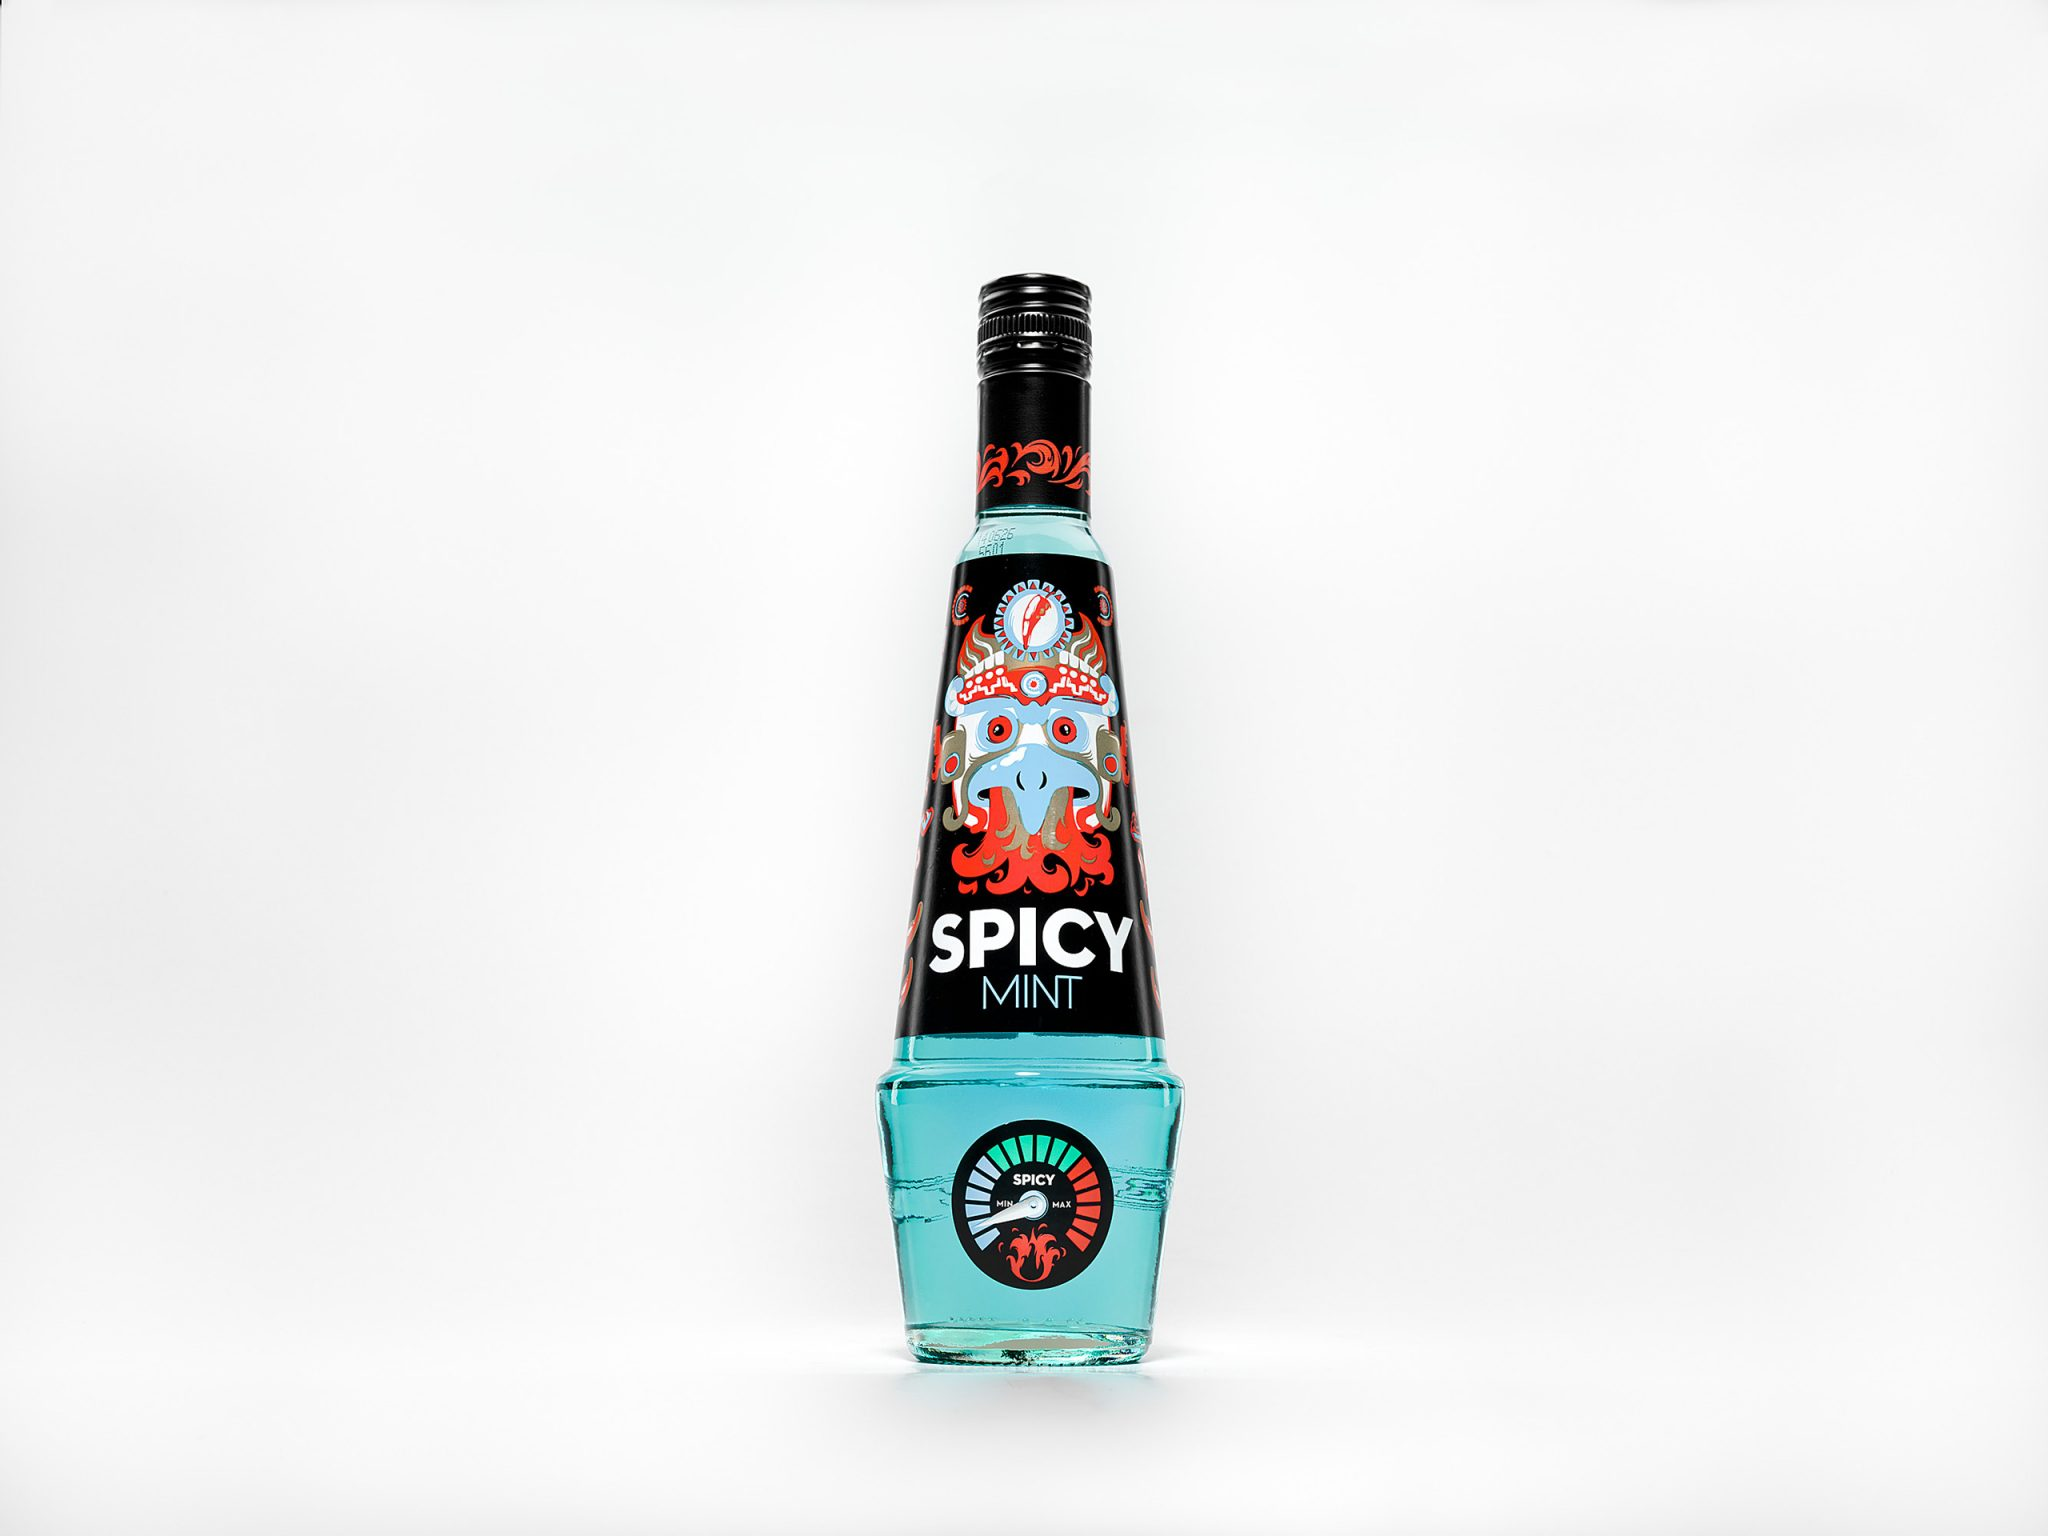 Spicy Mint